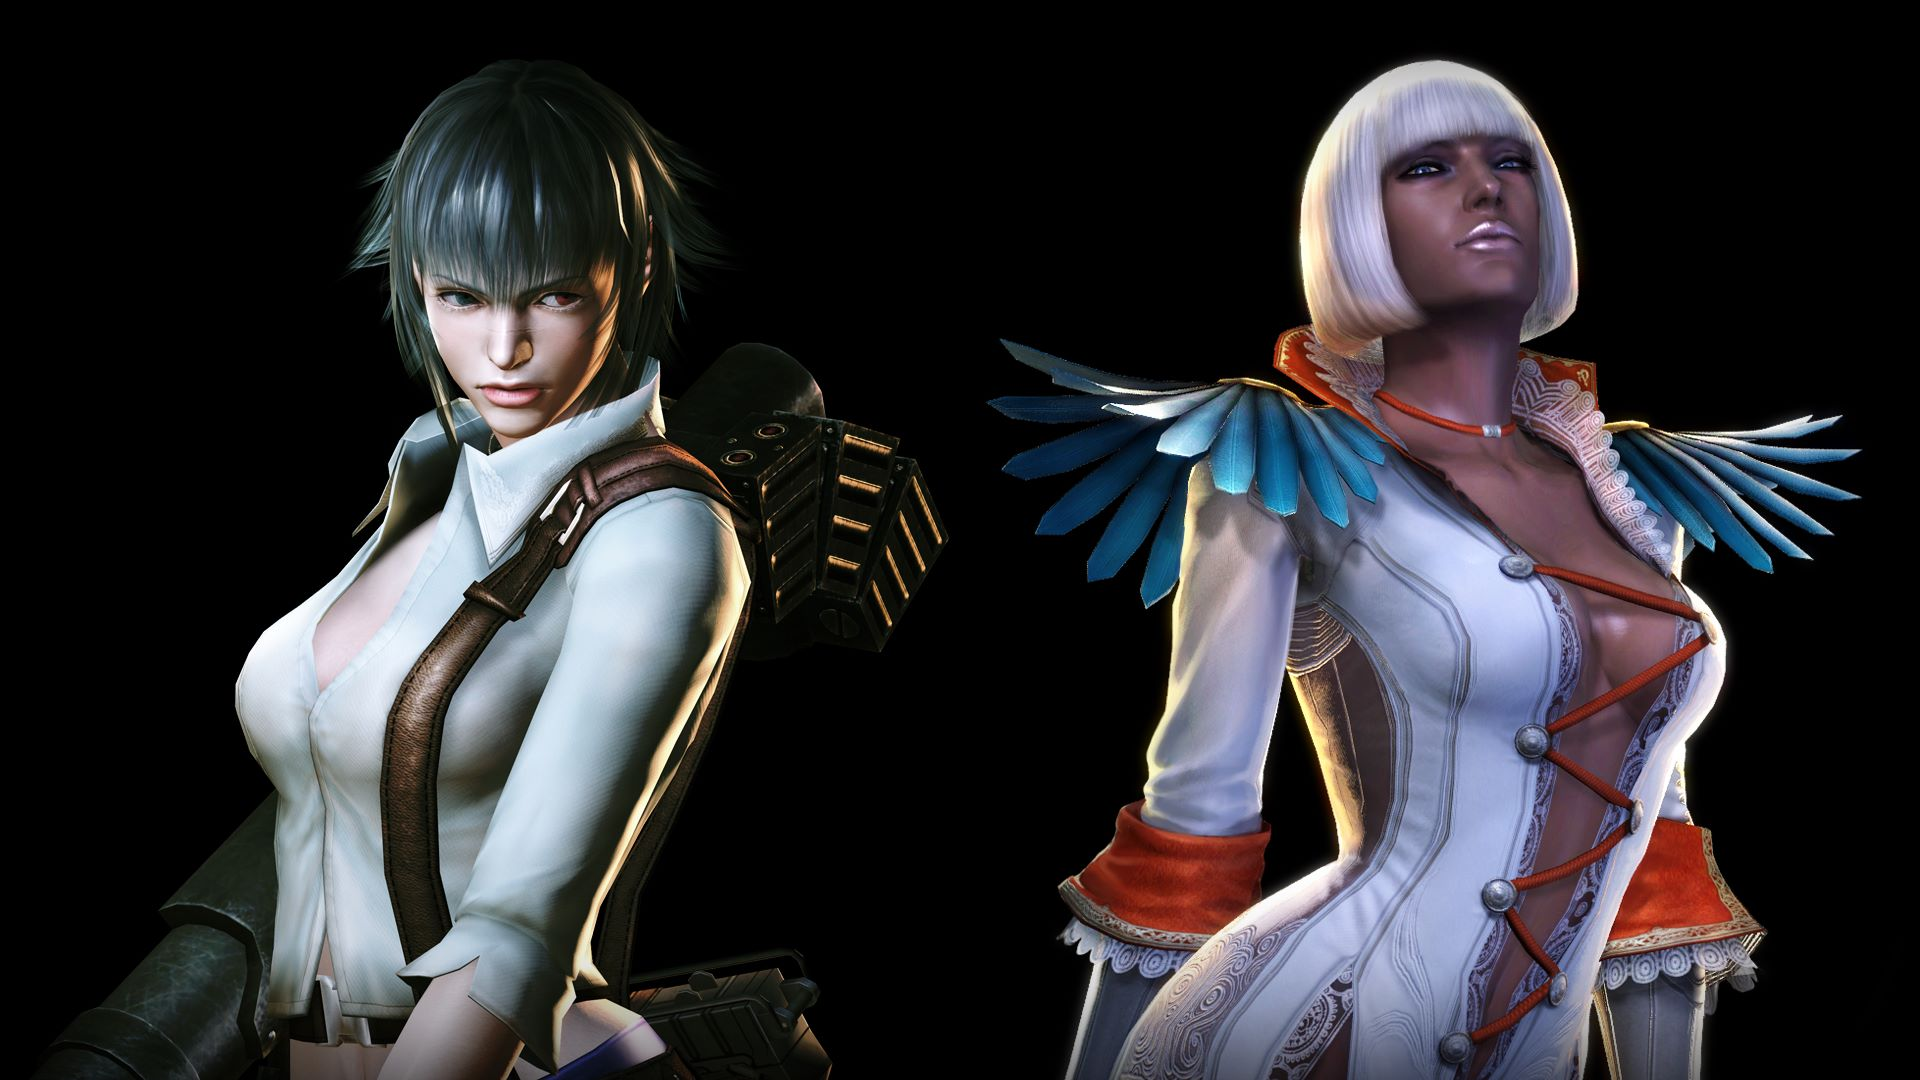 File size revealed for devil may cry 4 special editions lady the file size has been revealed for the lady trish costume pack in the upcoming xbox one version of devil may cry 4 special edition voltagebd Gallery